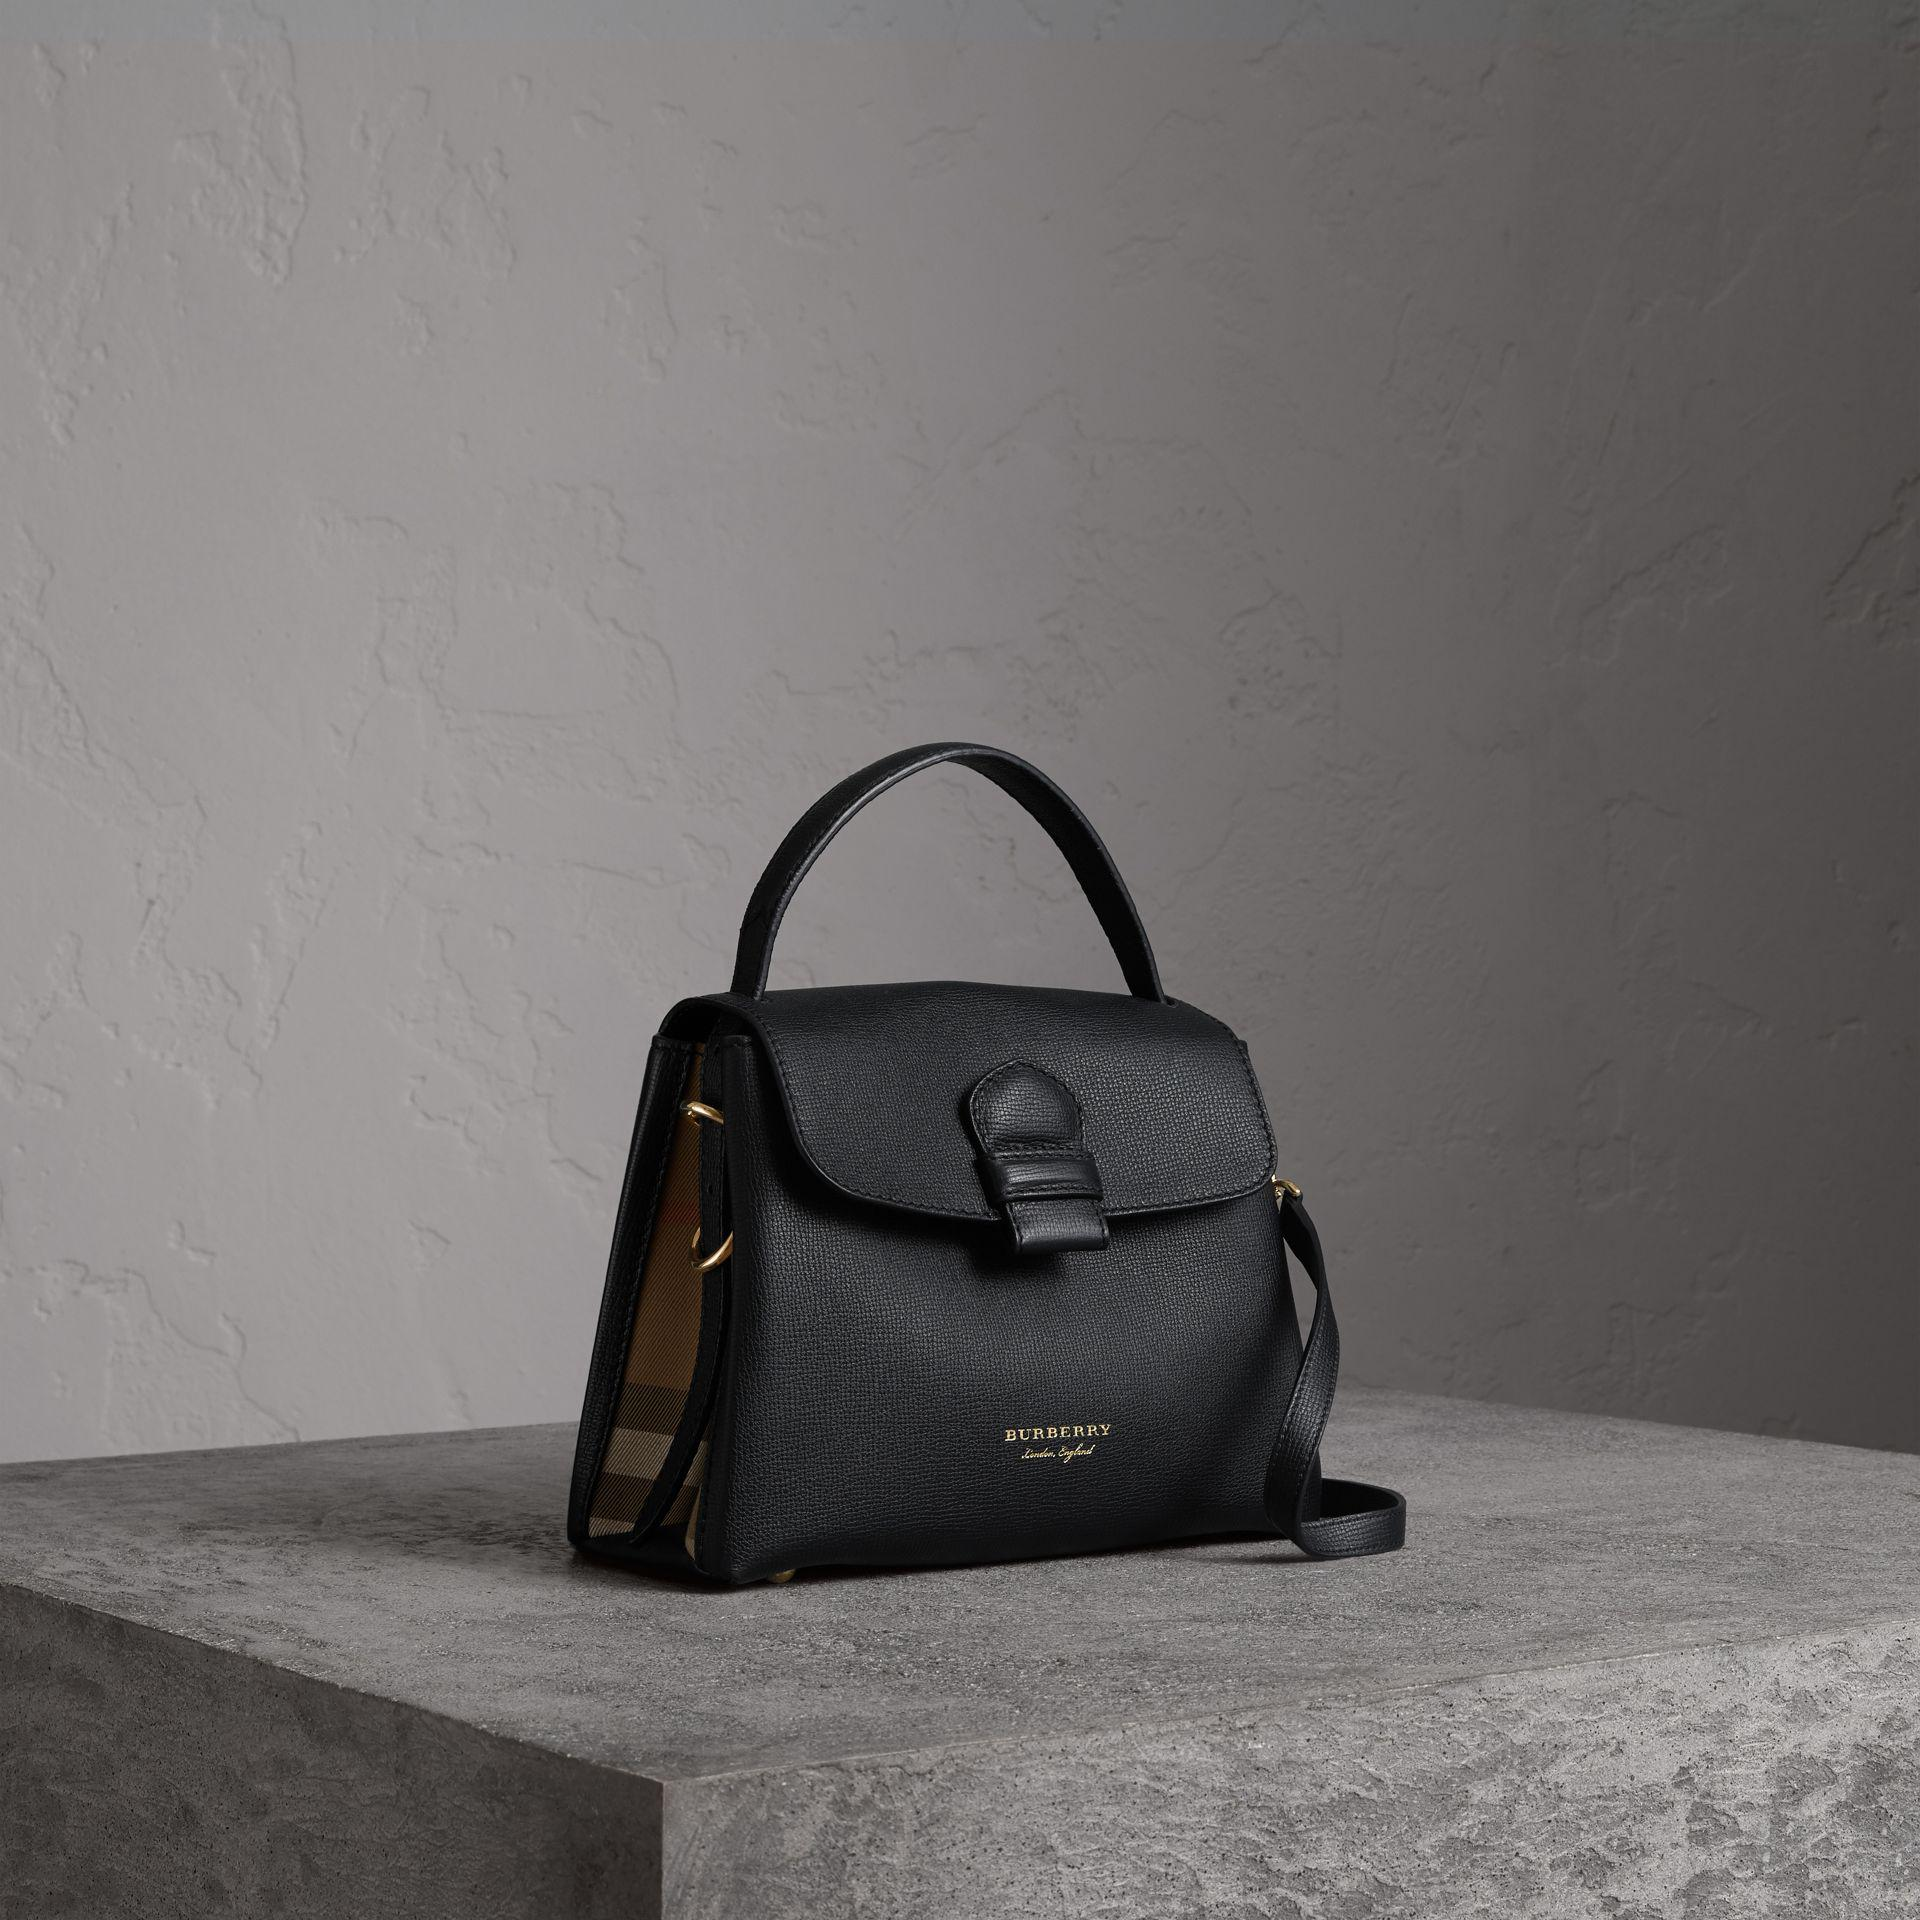 55e35e980430 Burberry Small Grainy Leather And House Check Tote Bag In Black ...